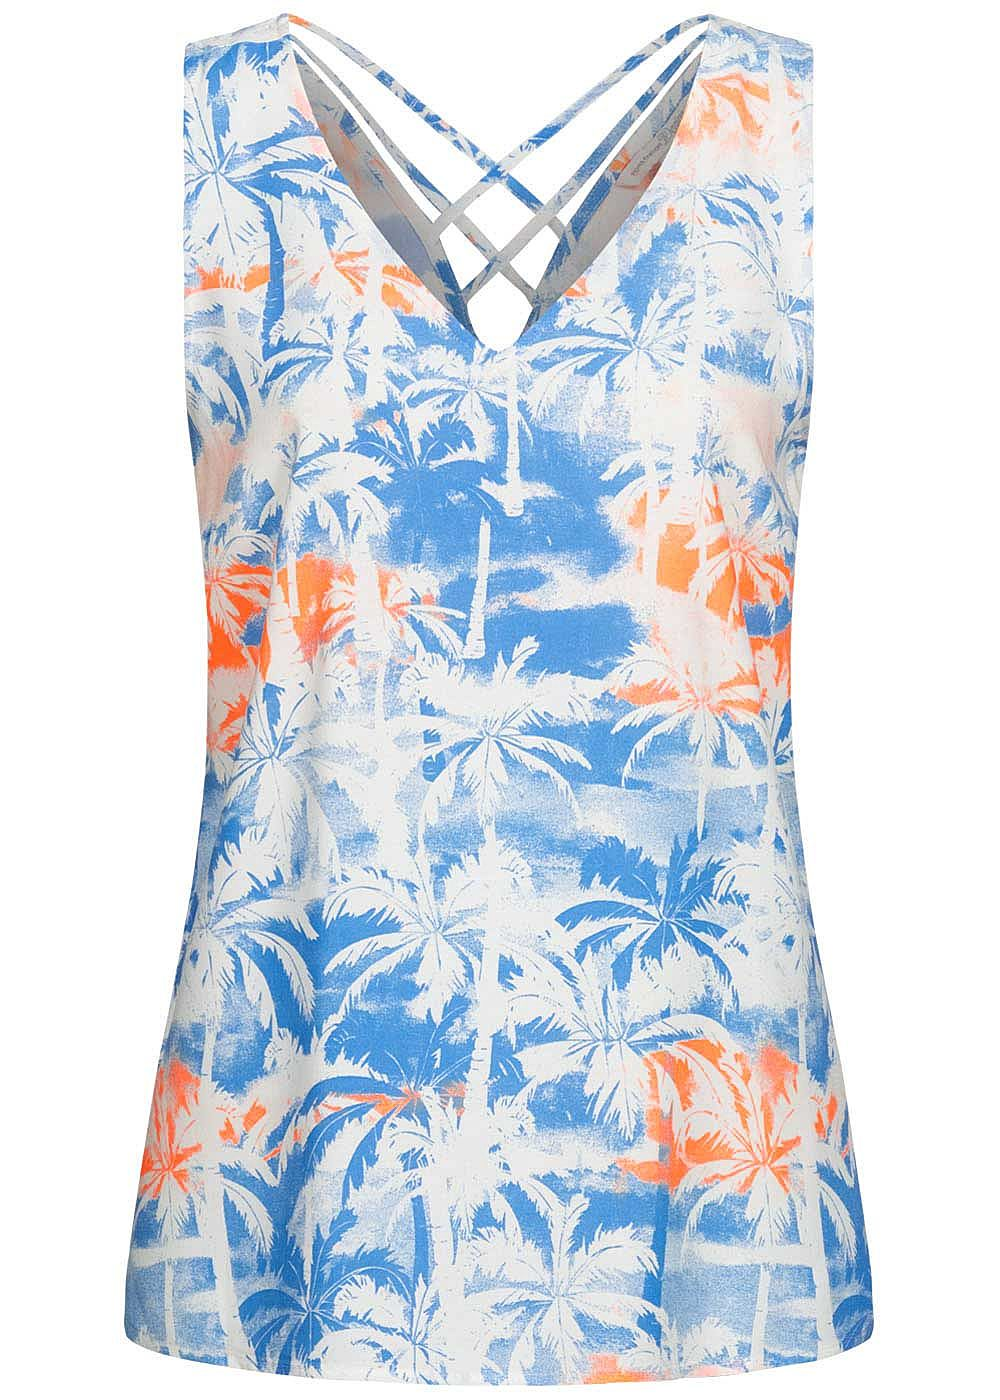 Tom Tailor Damen V-Neck Blusen Top Kreuzdetail hinten Tropical Print blau orange - Art.-Nr.: 20063266